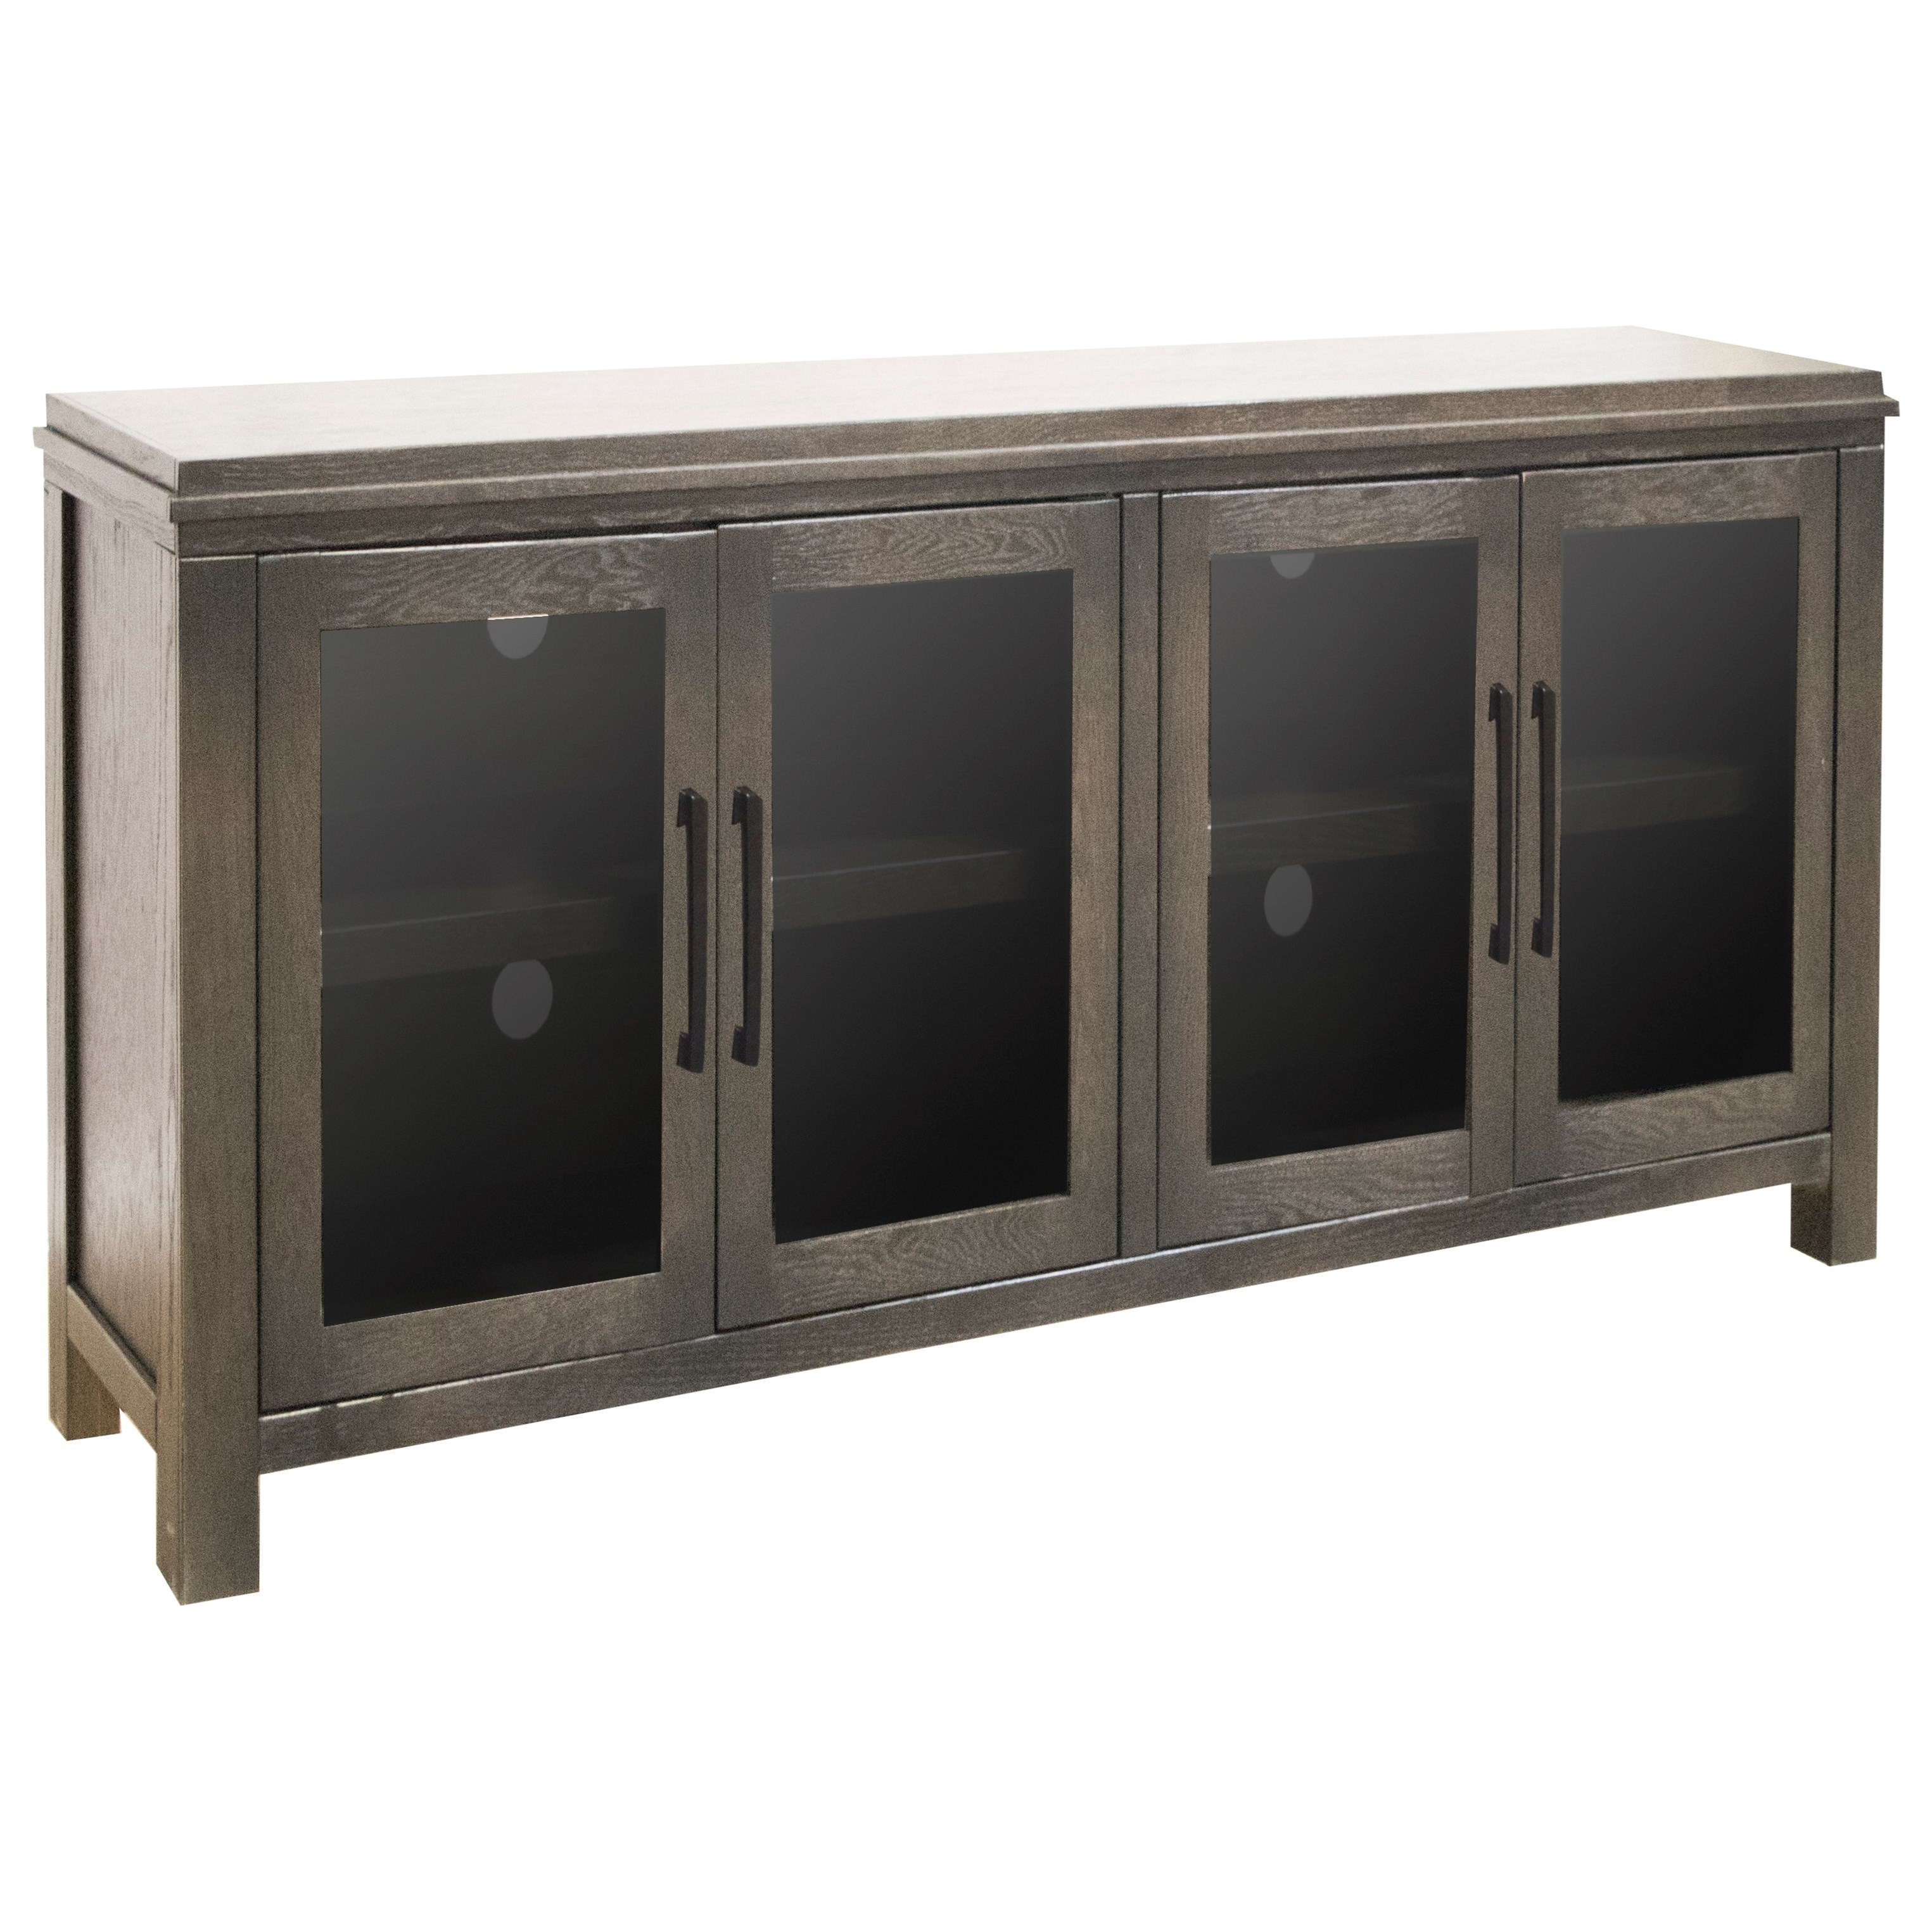 Legends Furniture Tybee TV Console - Item Number: TY1862-CLV